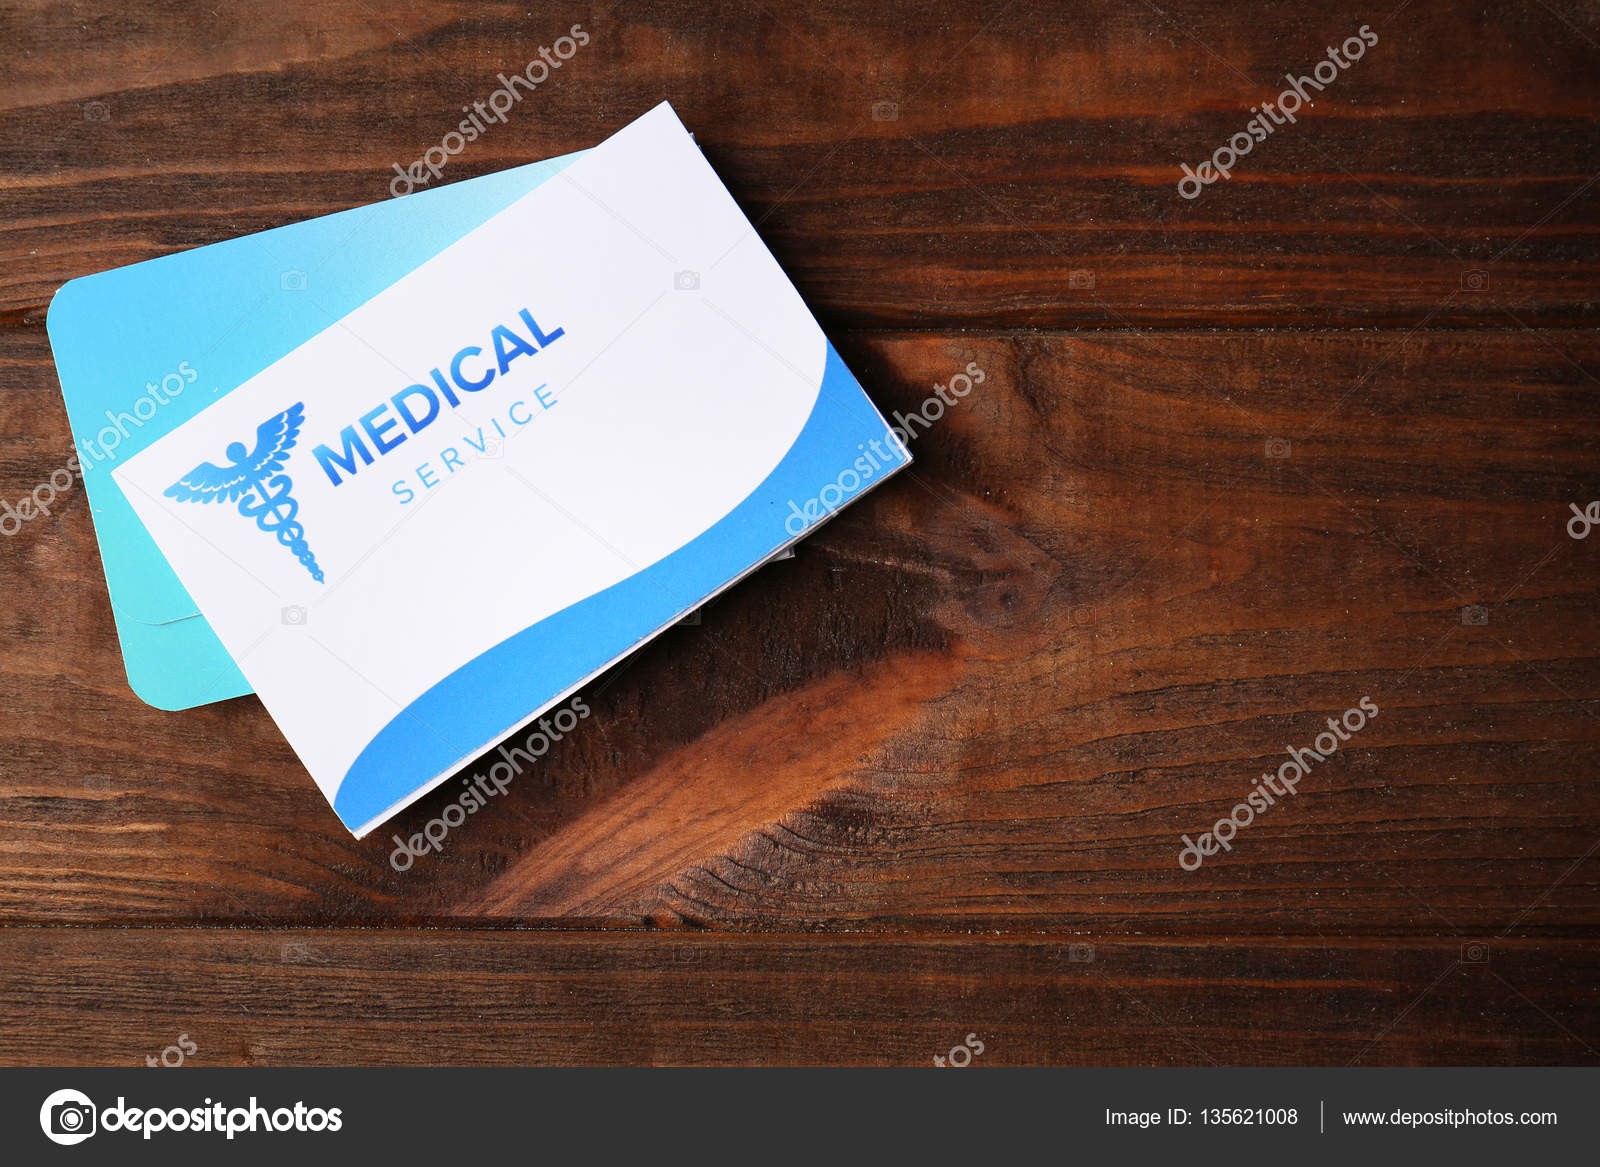 medical business cards — Stock Photo © belchonock #135621008